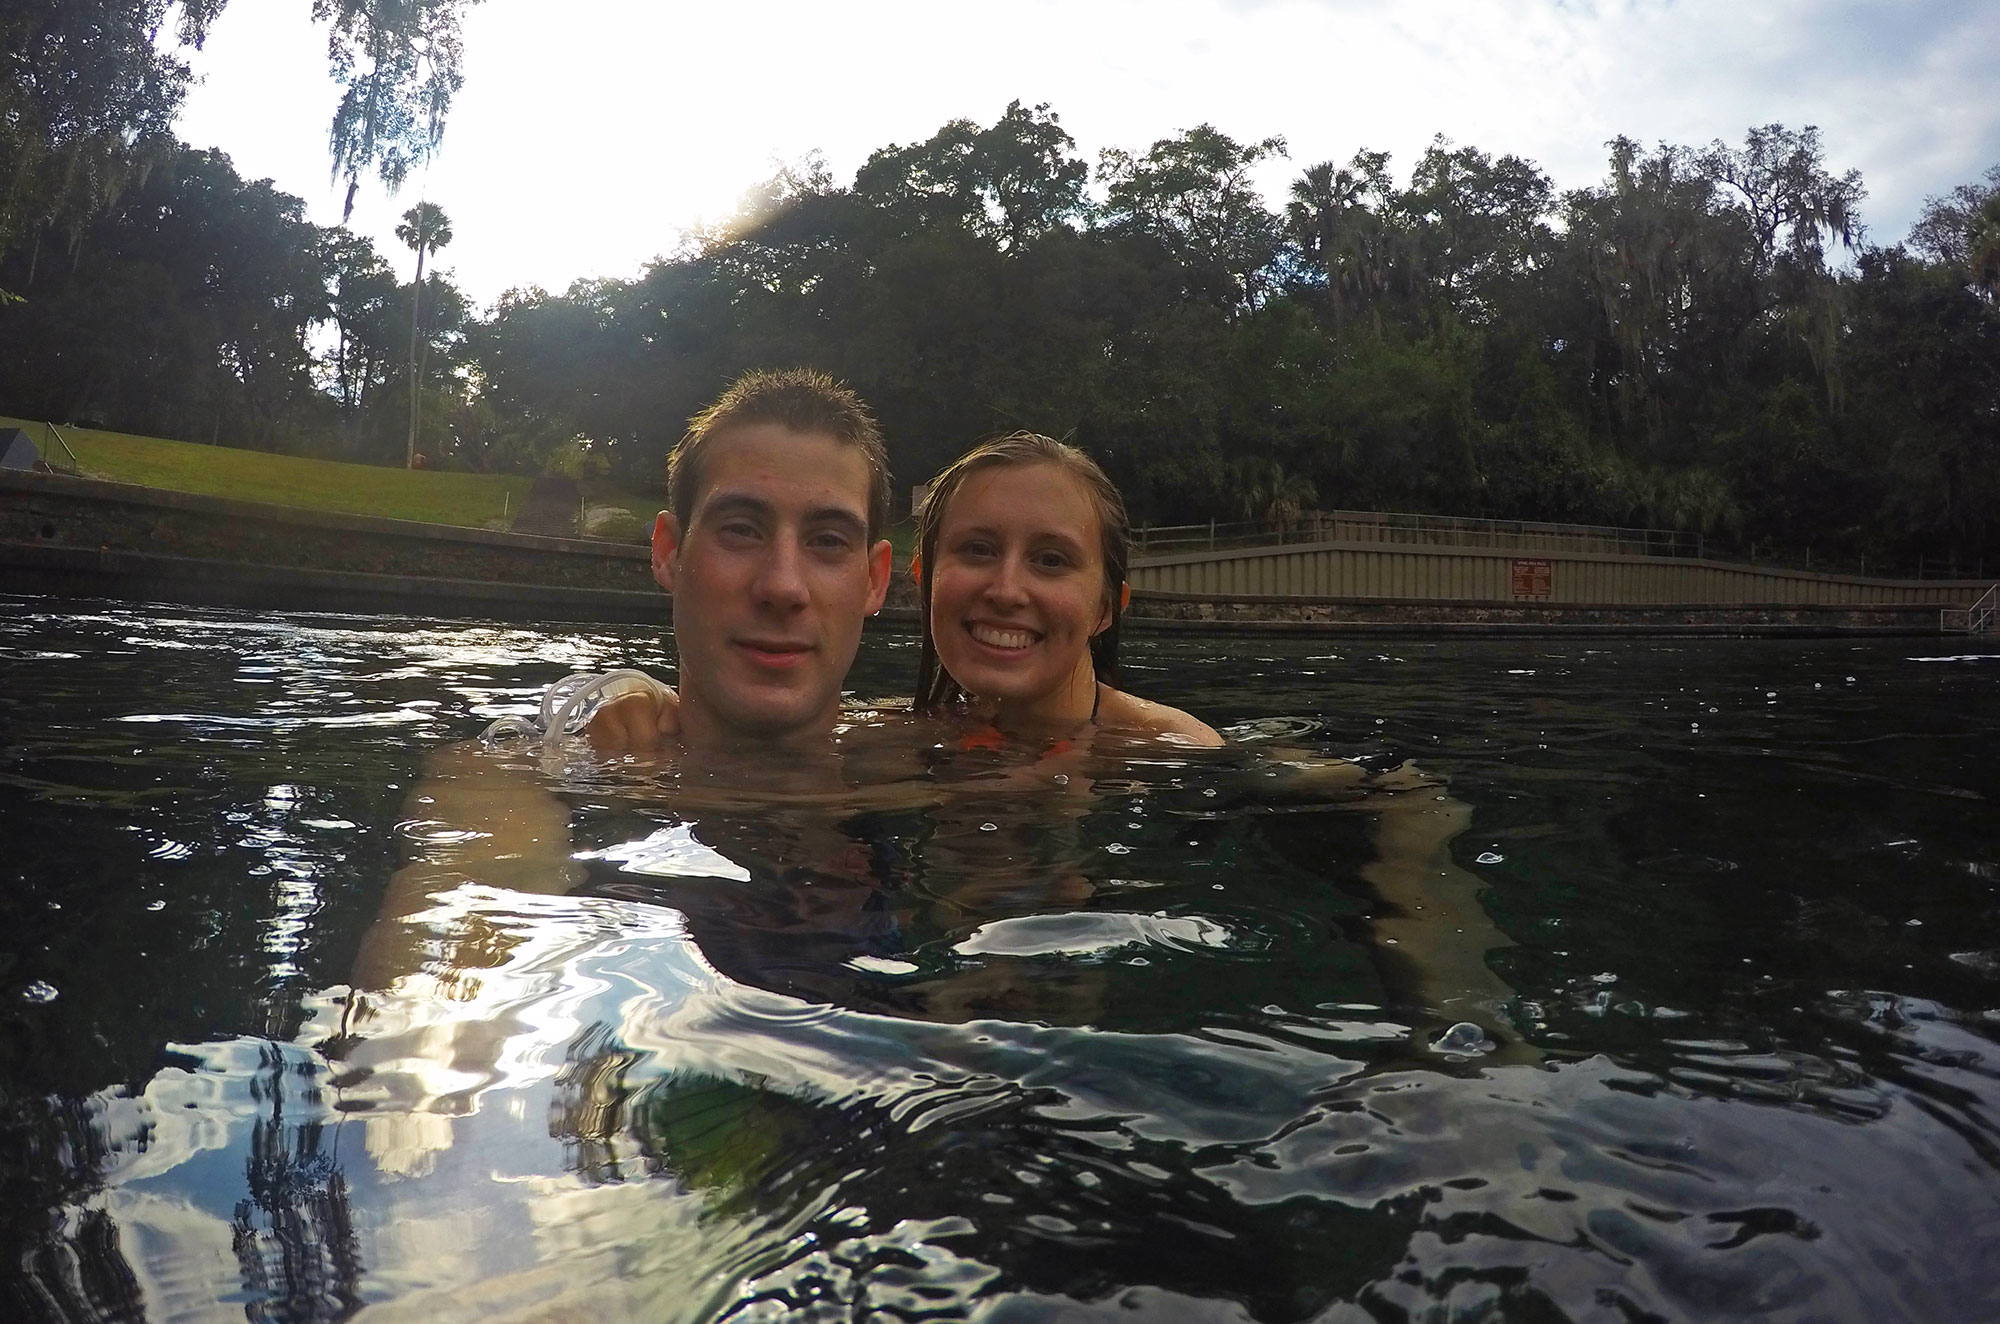 Brad and Leslie swimming at Wekiwa Springs State Park in Apopa Florida